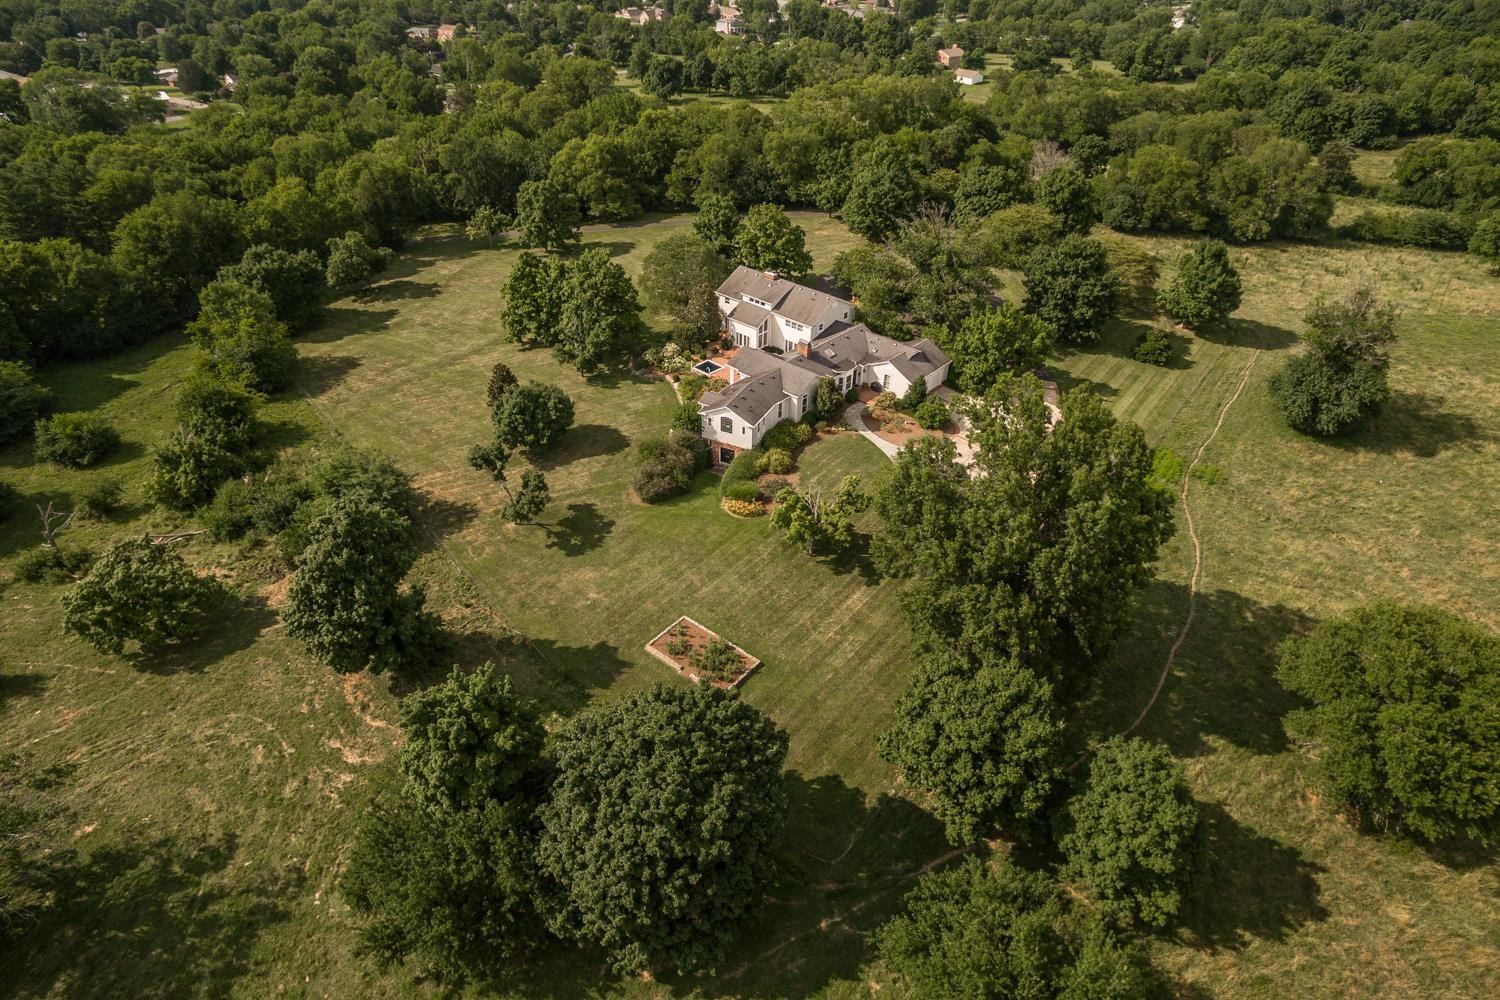 $899,900 - 6Br/5Ba -  for Sale in Na, Gallatin